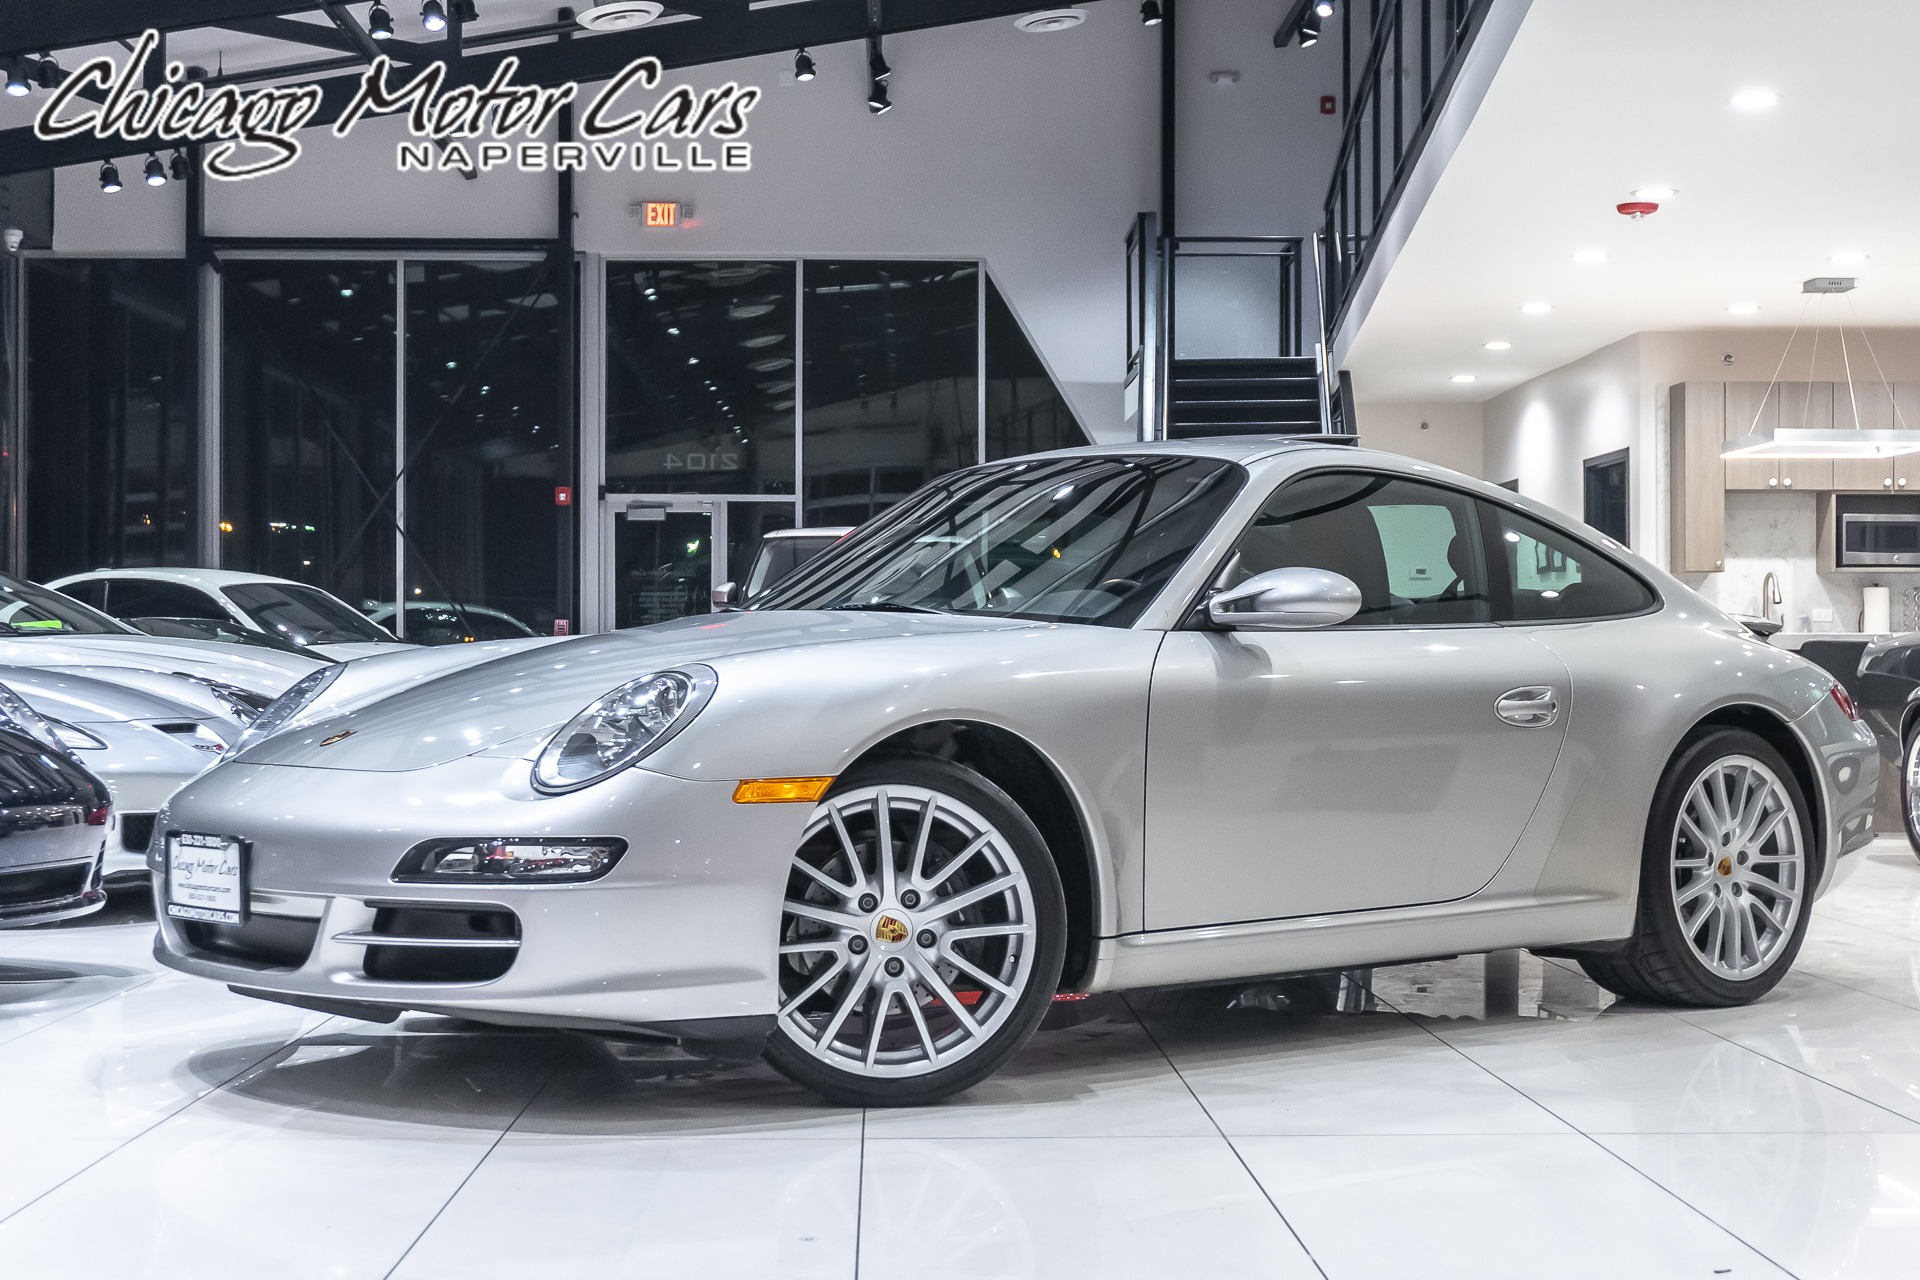 Used-2005-Porsche-911-Carrera-Coupe-MSRP-77K--6-SPEED-MANUAL-ONLY-9k-MILES